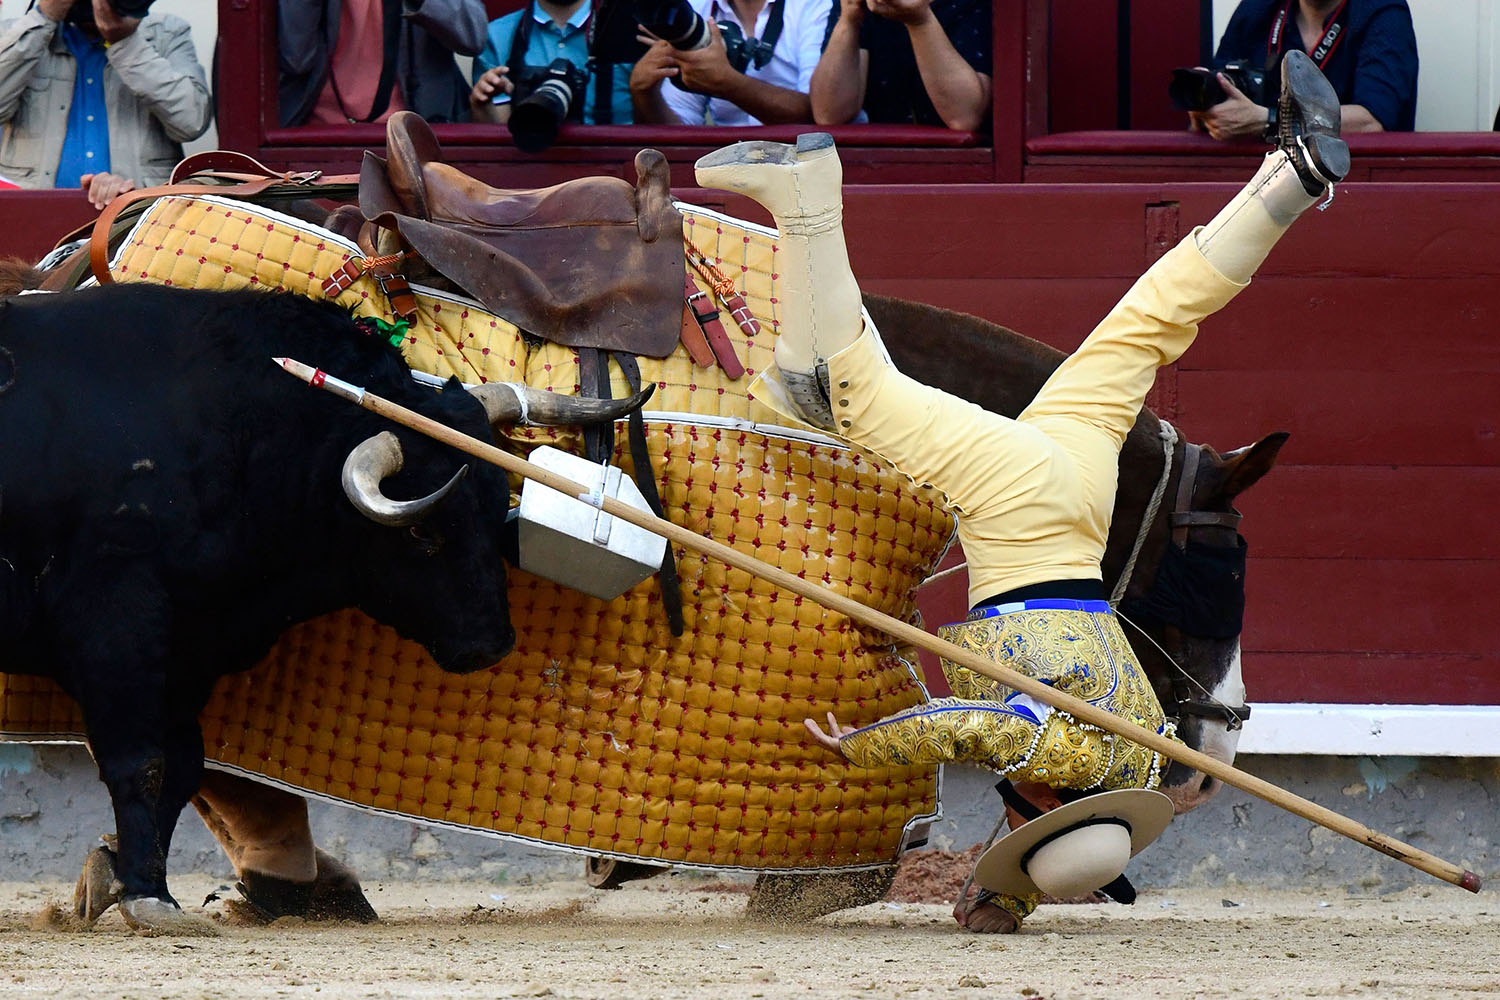 A picador falls from his horse during a bullfight during the San Isidro festival in Madrid on May 15. GABRIEL BOUYS/AFP/Getty Images